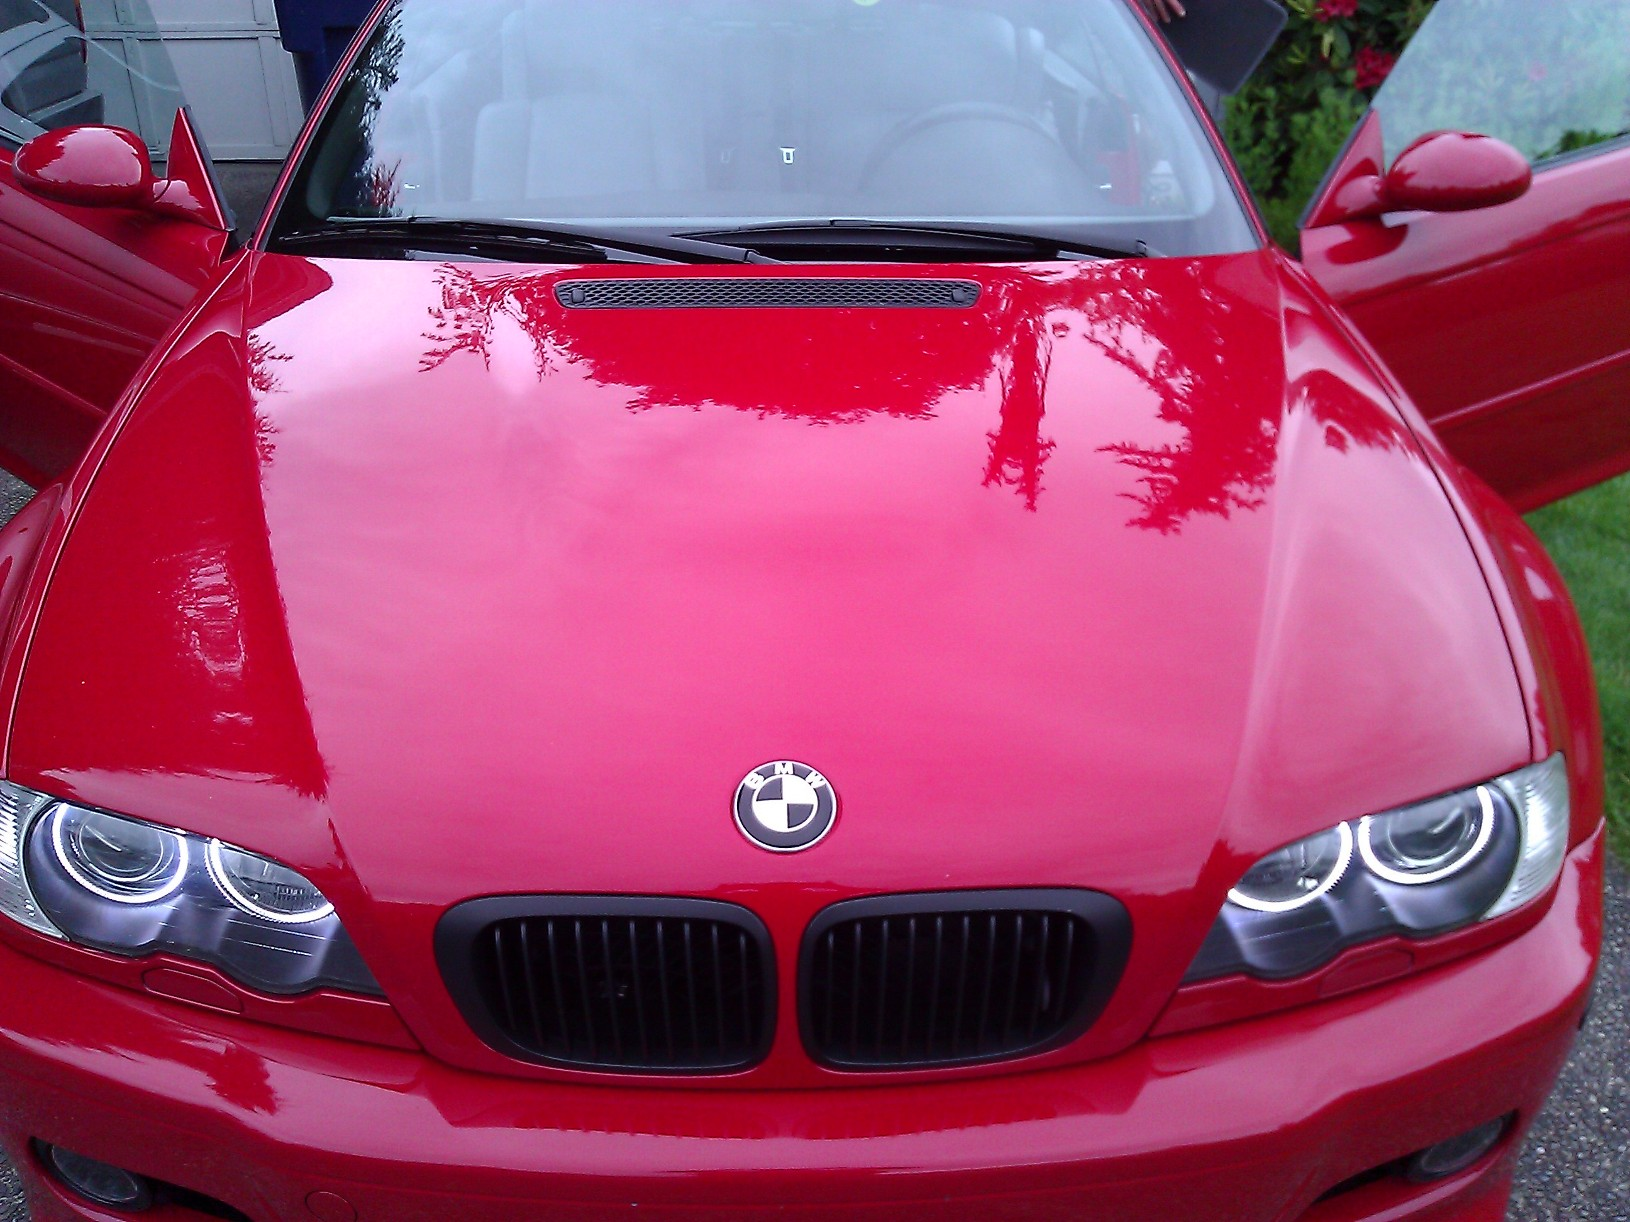 E46 Imola Red M3 Convertible-photo_c56fed39-8f21-efa2-17a0-d8210a033a91.jpg